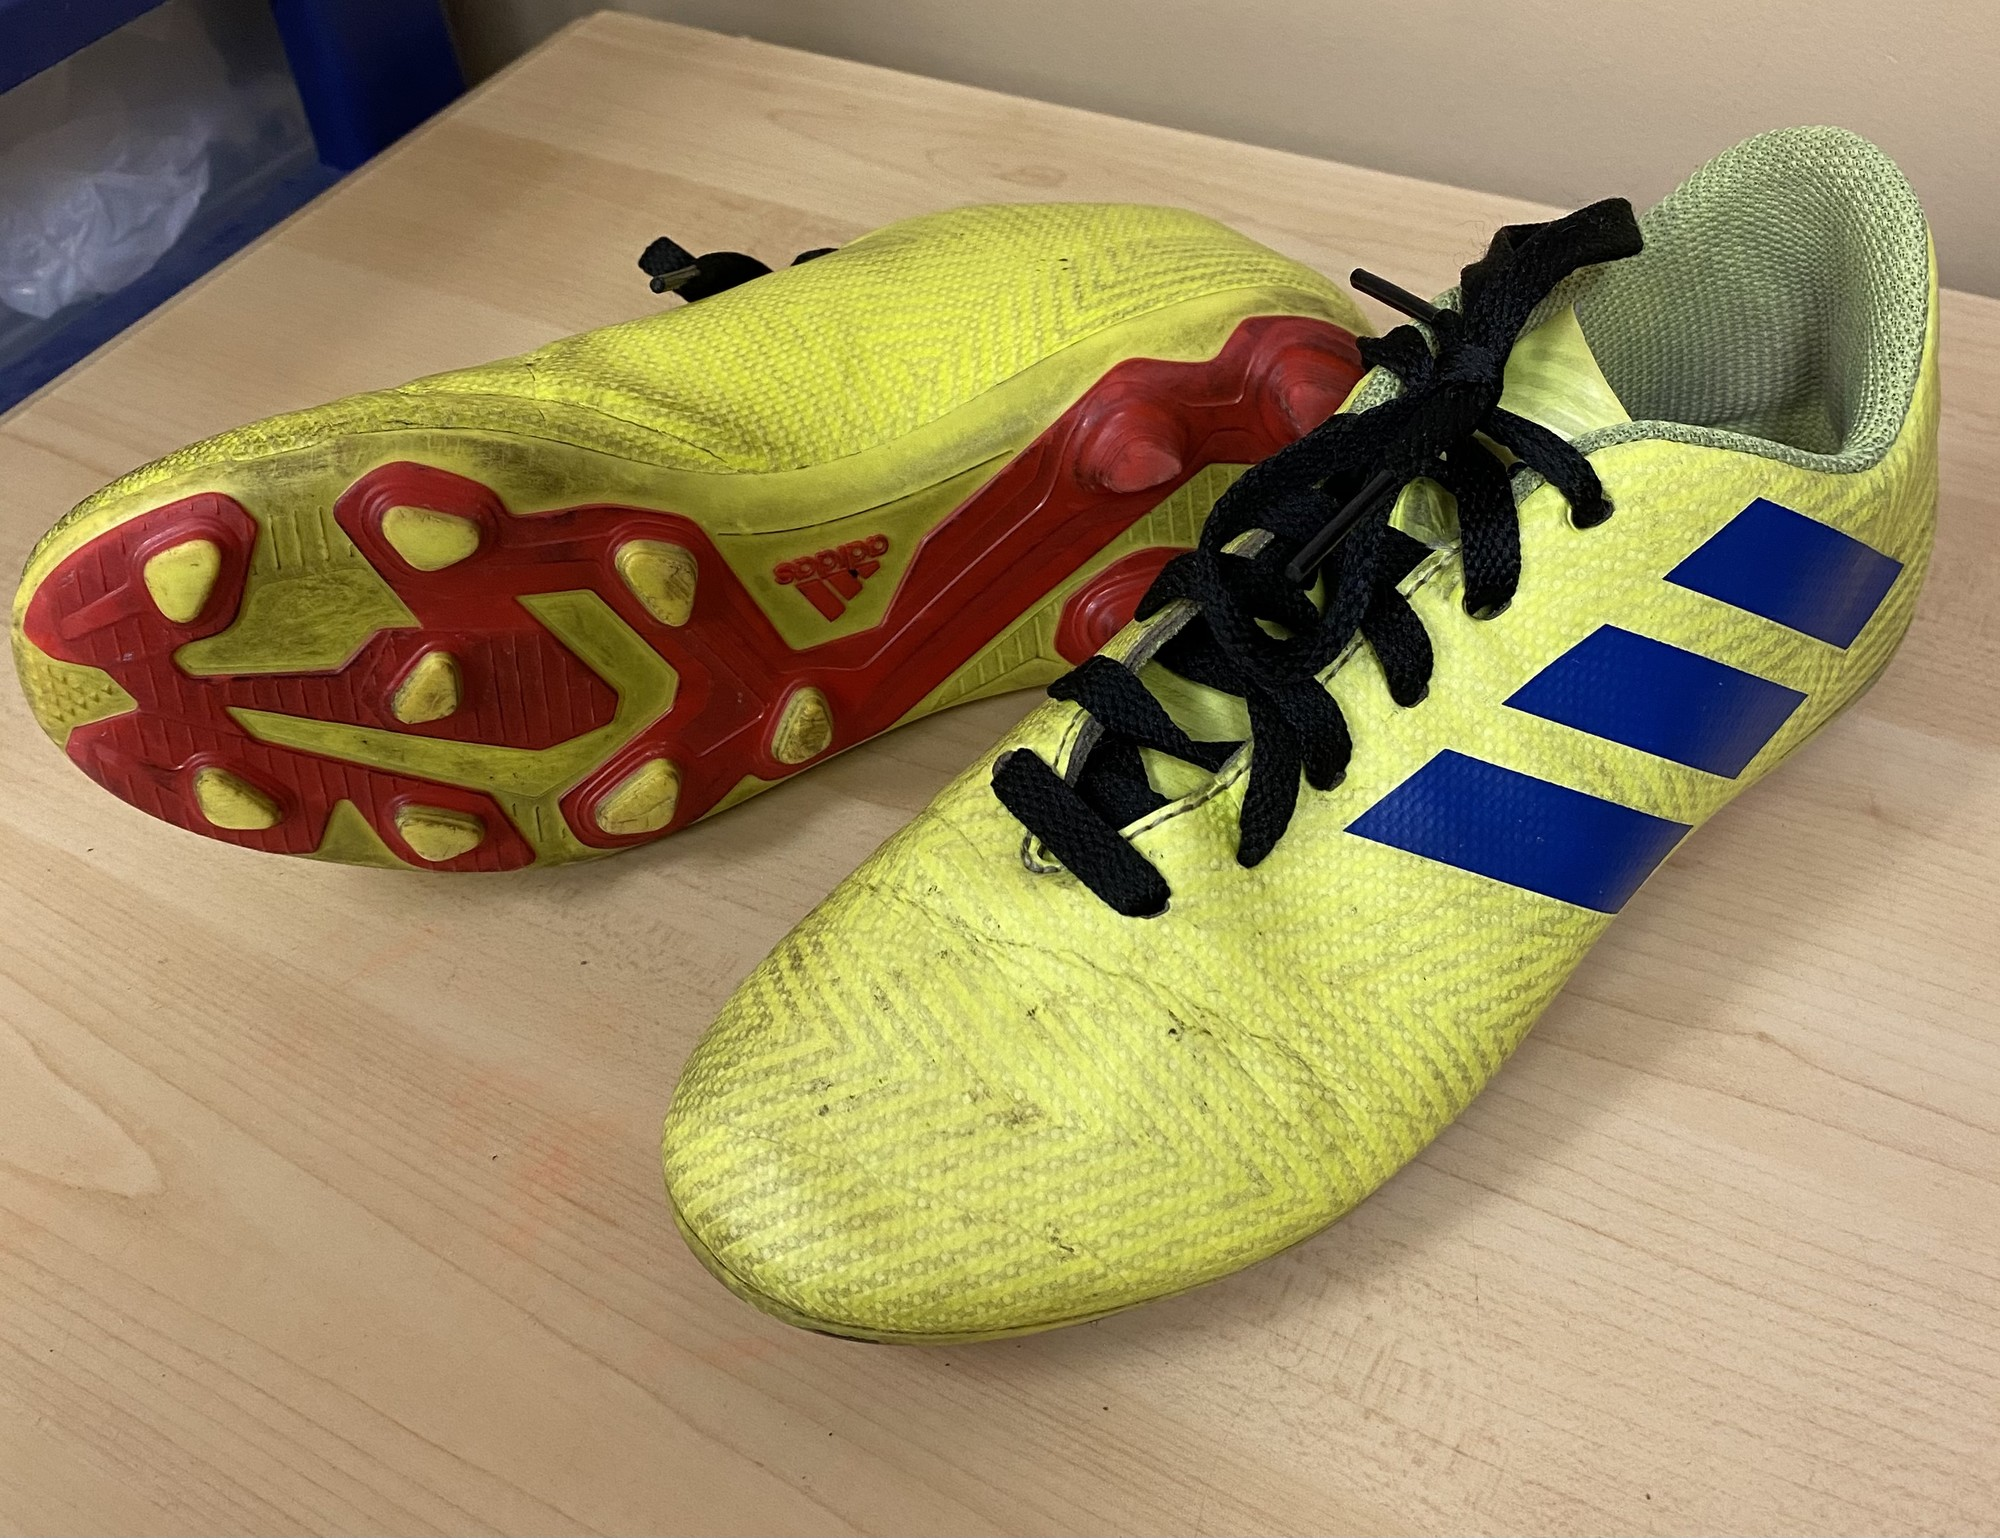 Adidas Cleats, Yellow, Size: 3Y